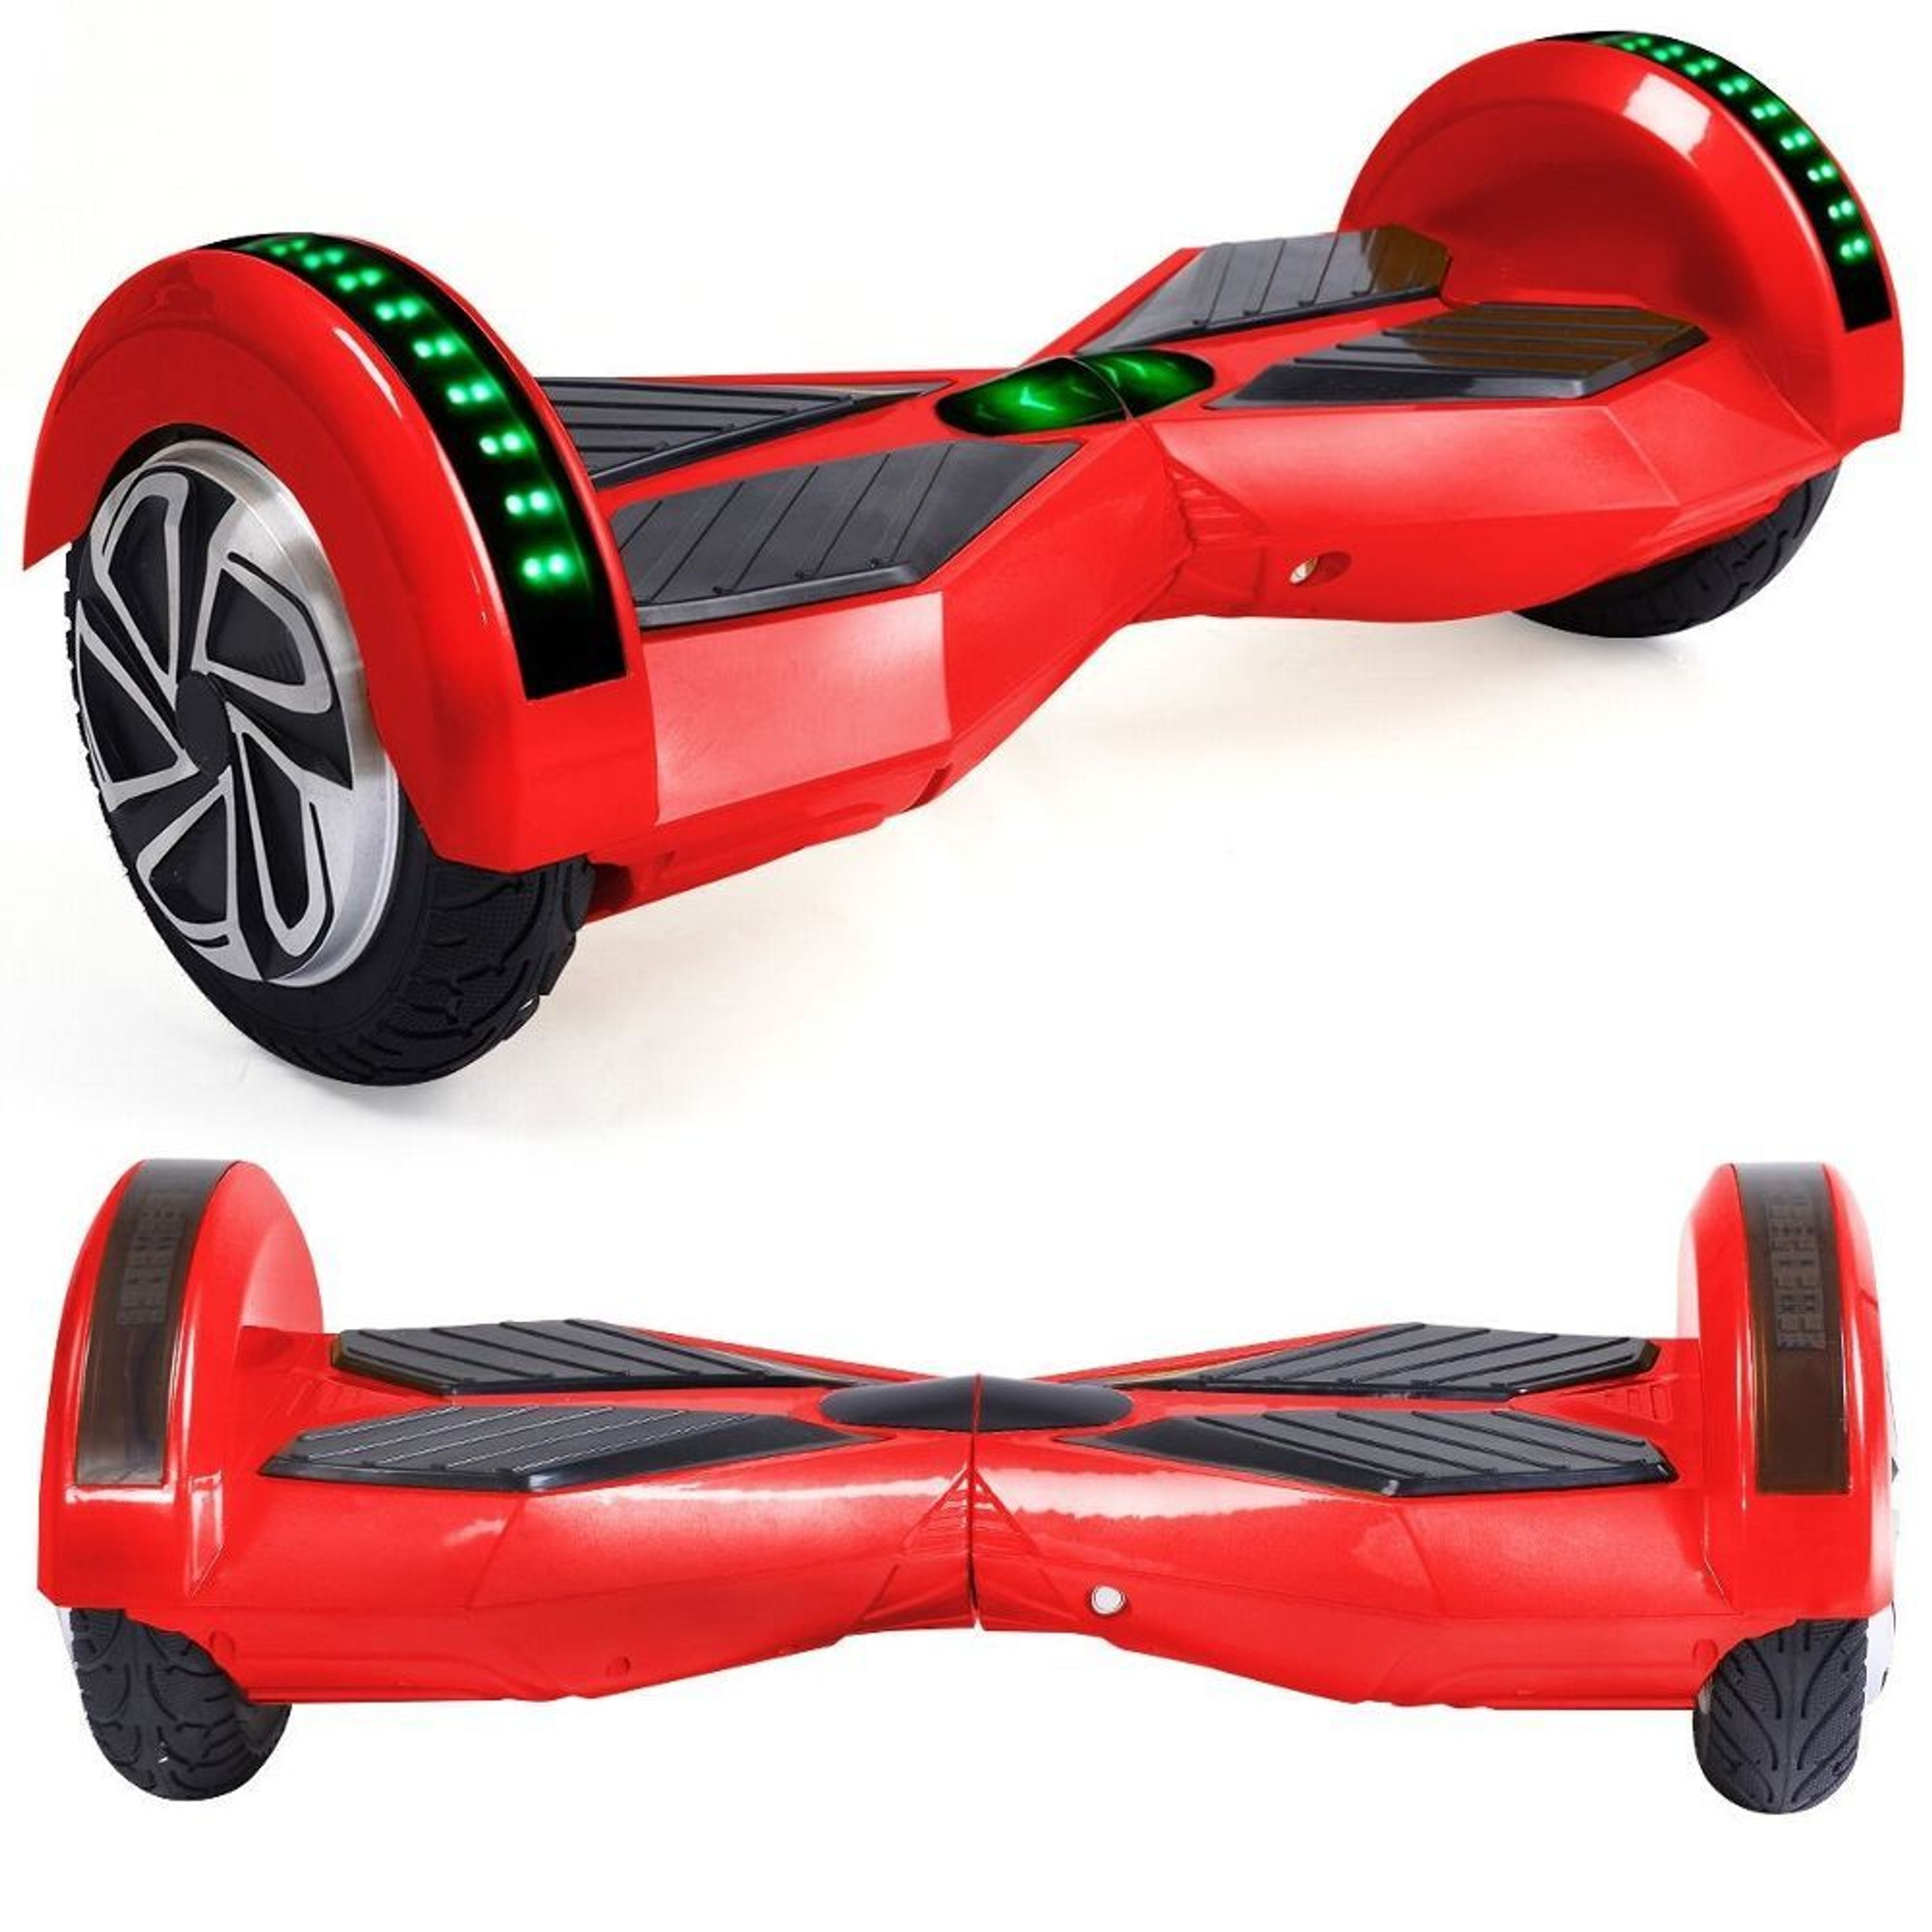 angebot 10 8 6 5 zoll hoverboard bluetooth self rohs. Black Bedroom Furniture Sets. Home Design Ideas